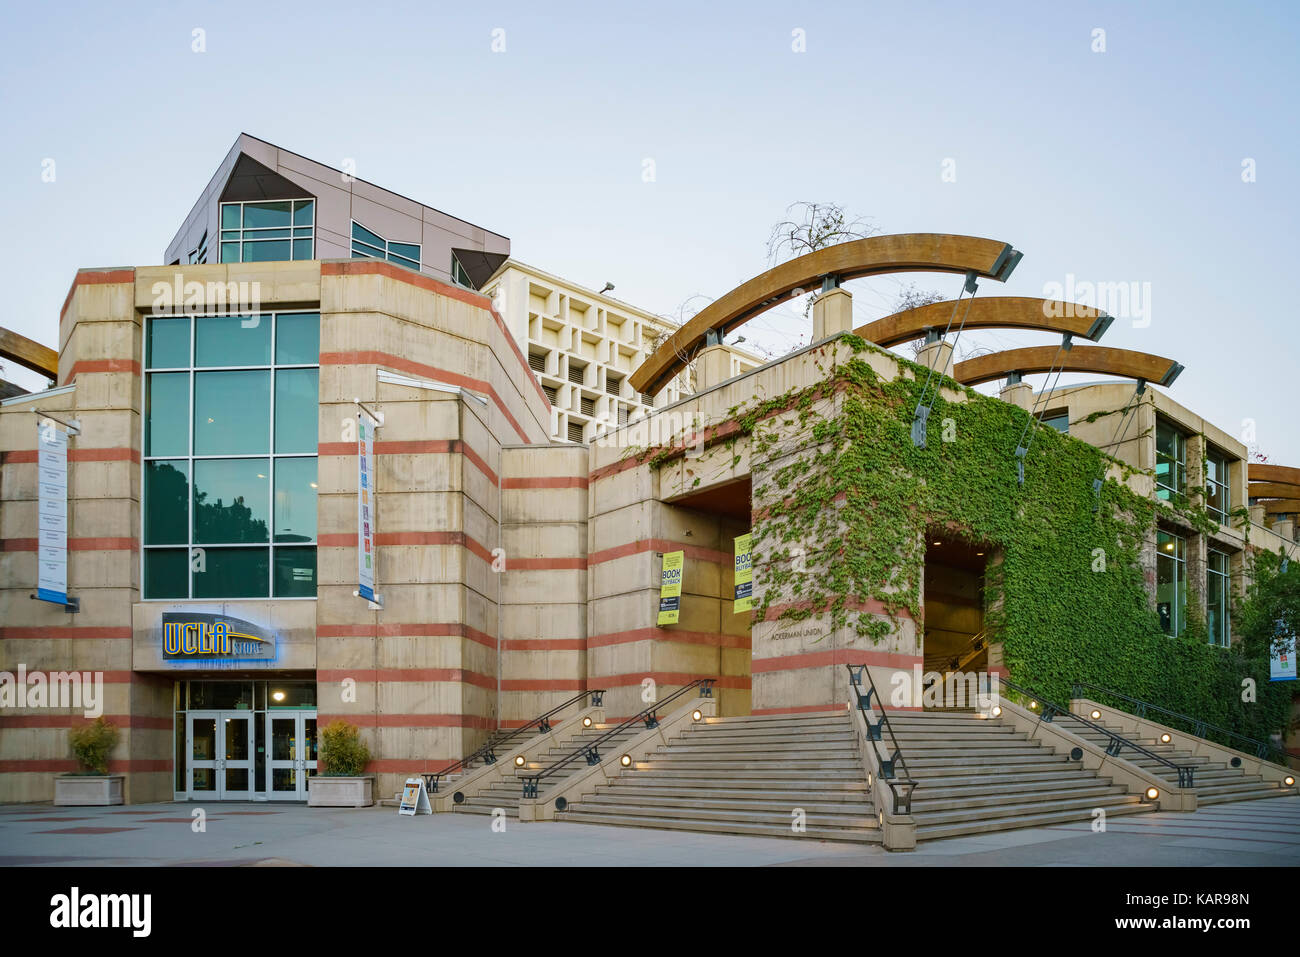 Westwood, JUN 21: UCLA Book Store and Ackerman Union on JUN 21, 2017 at Westwood, Los Angeles County, California, - Stock Image